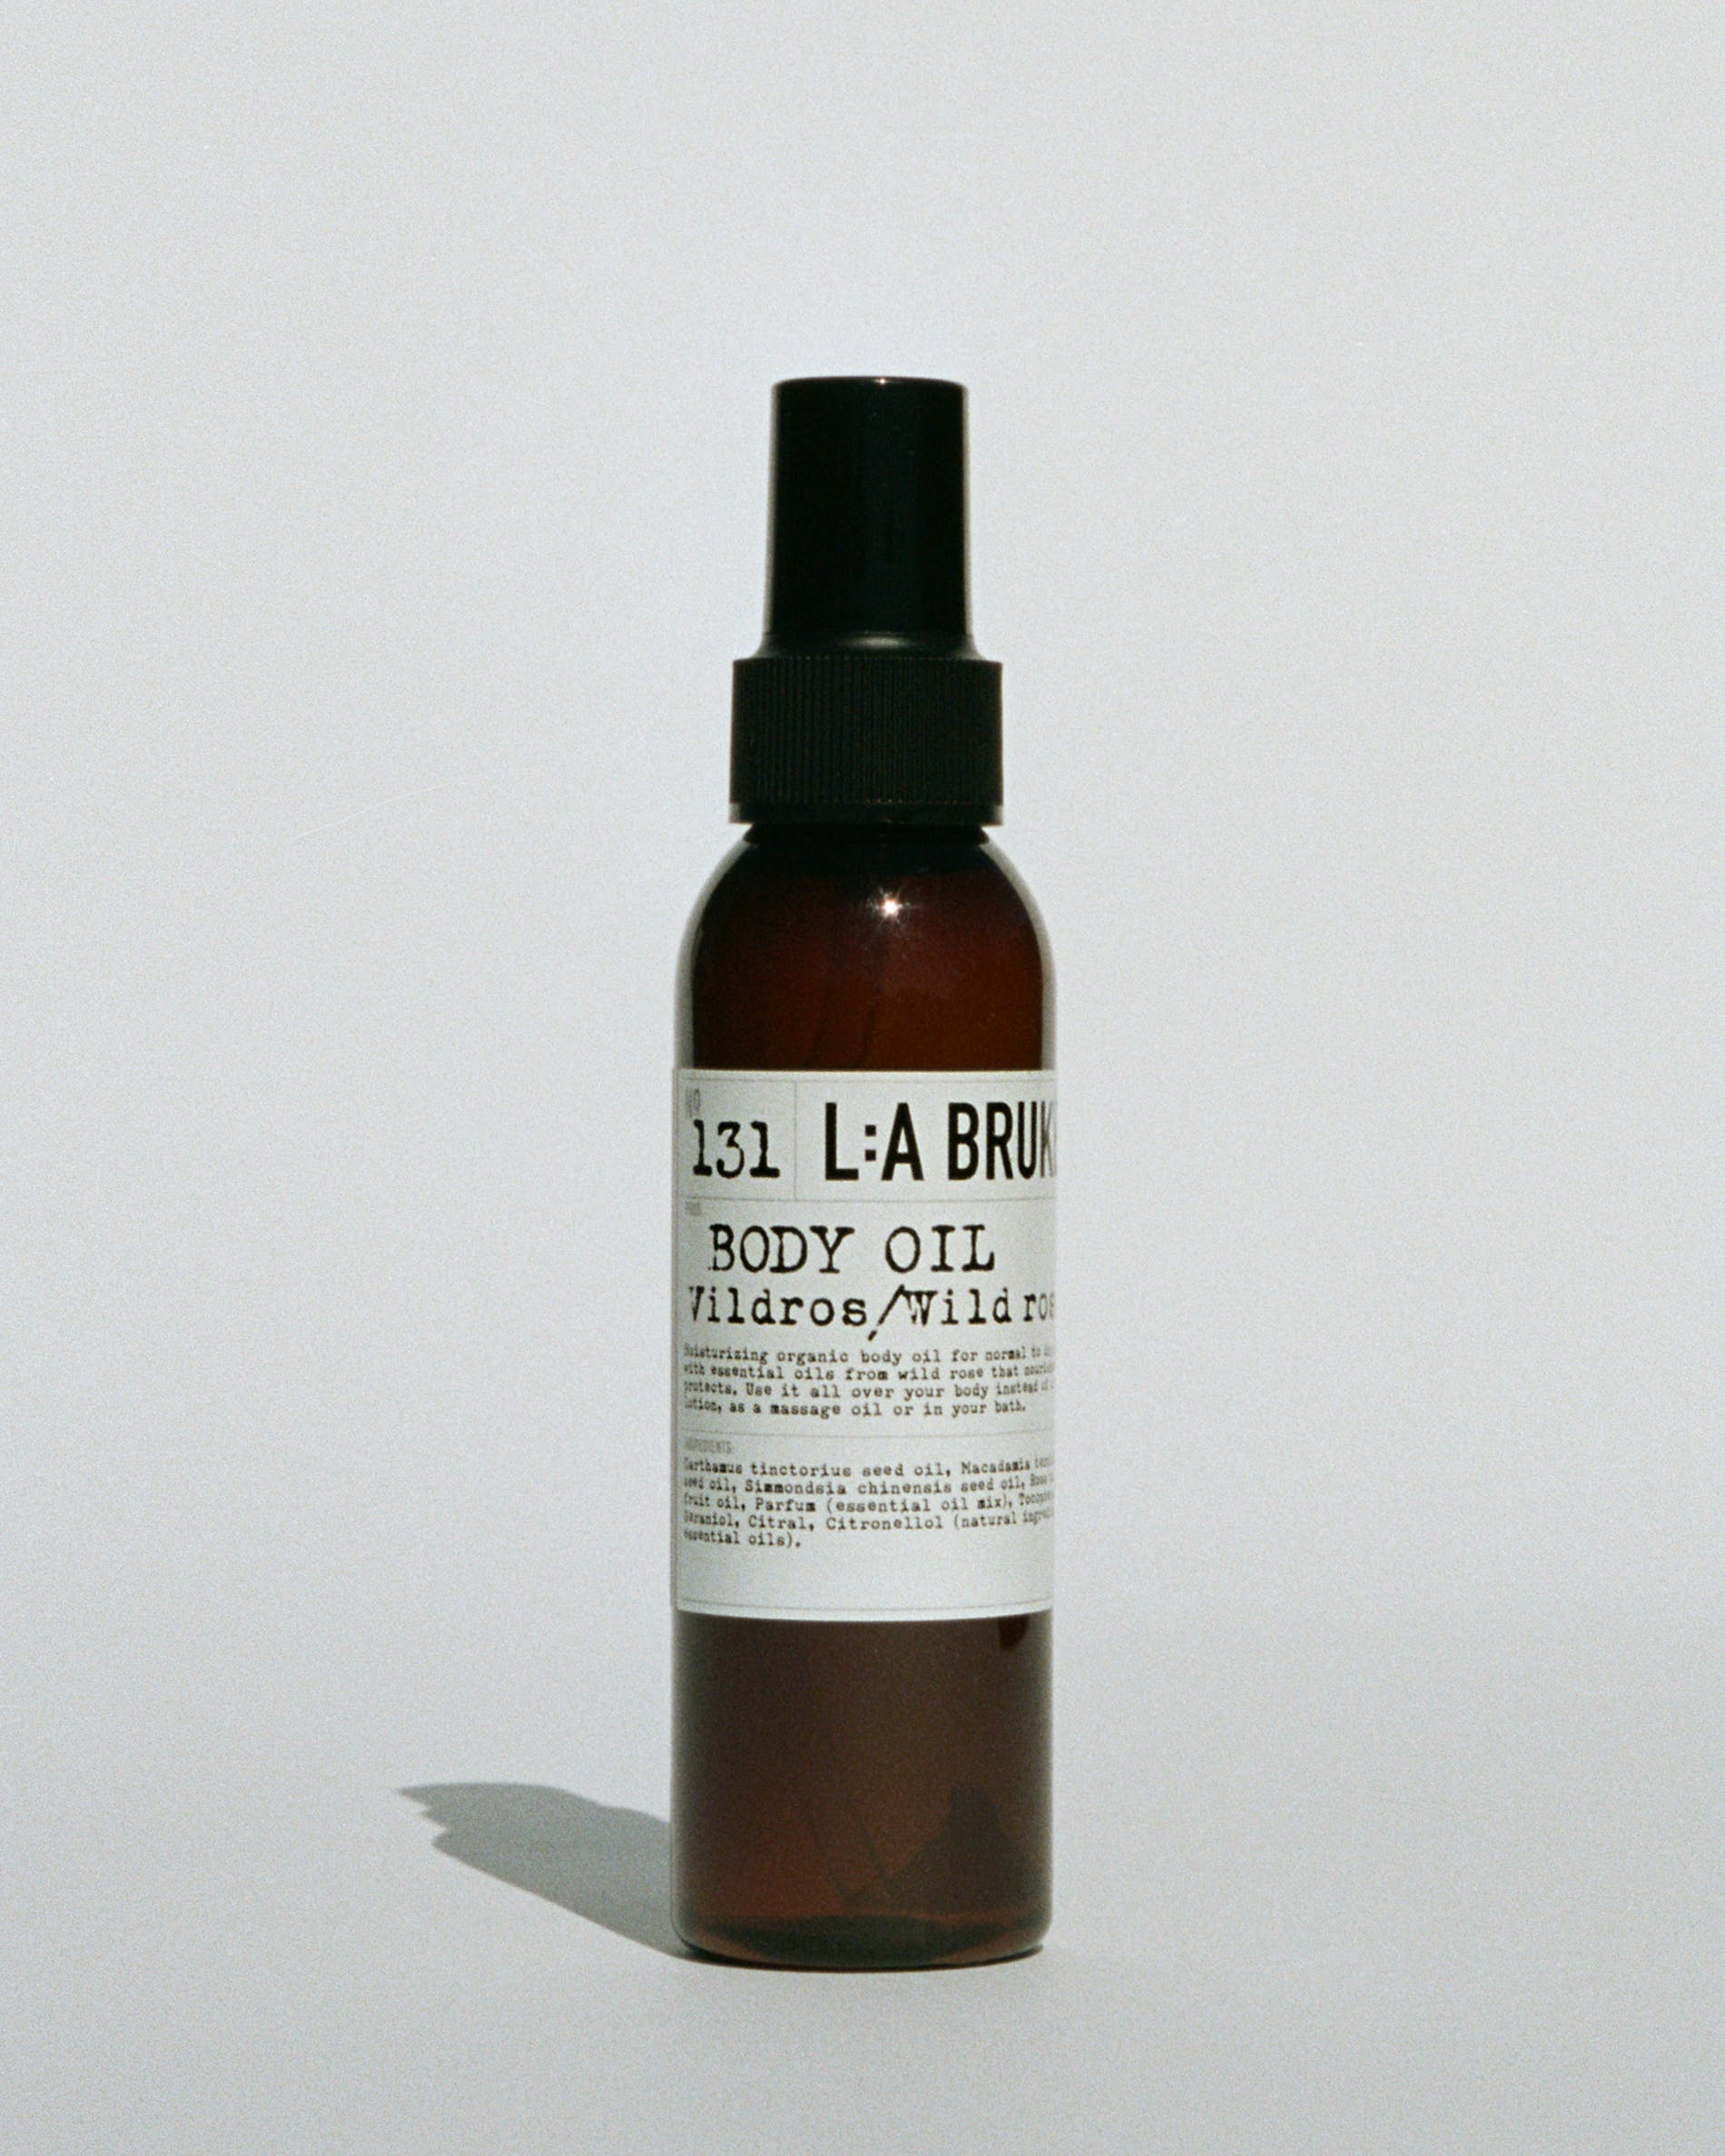 L:A Bruket 131 Body Oil, Wild Rose, 120ml